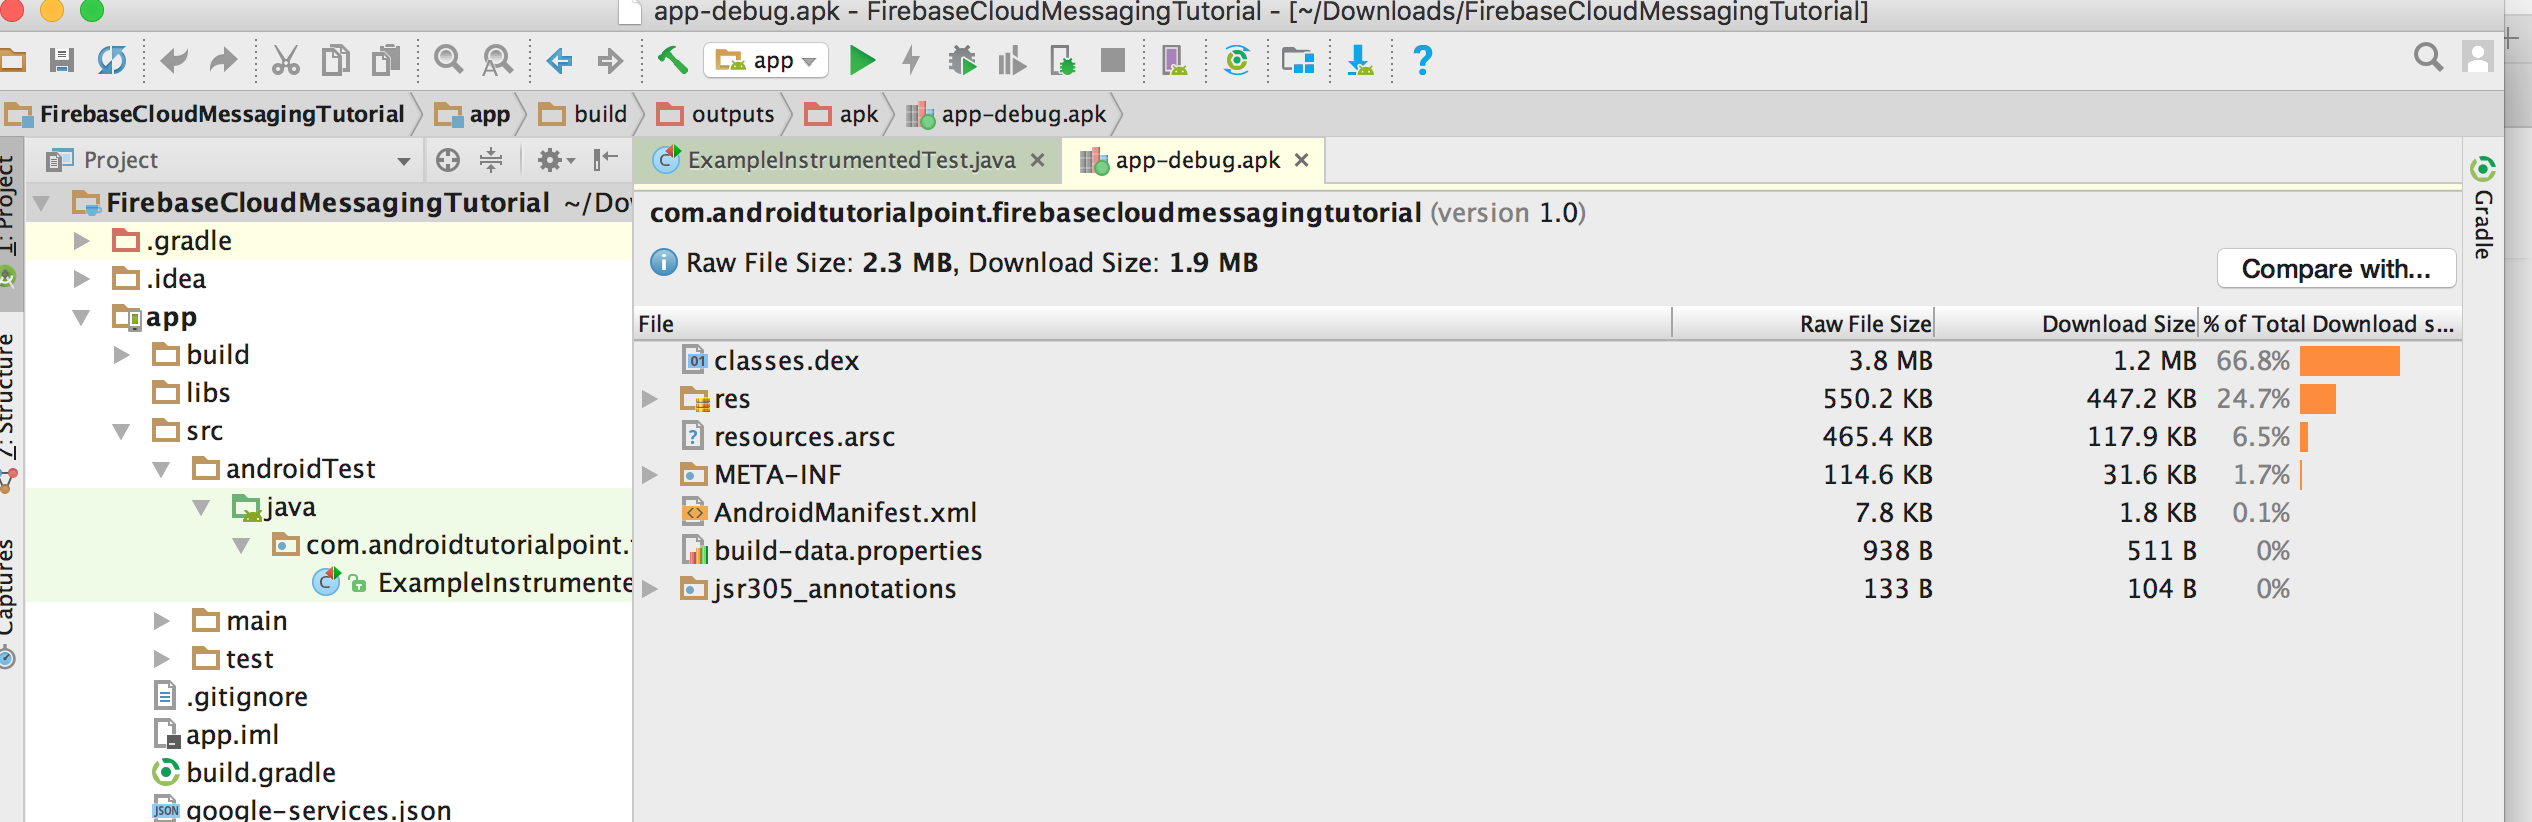 Penetrating into APK file after completion of build process